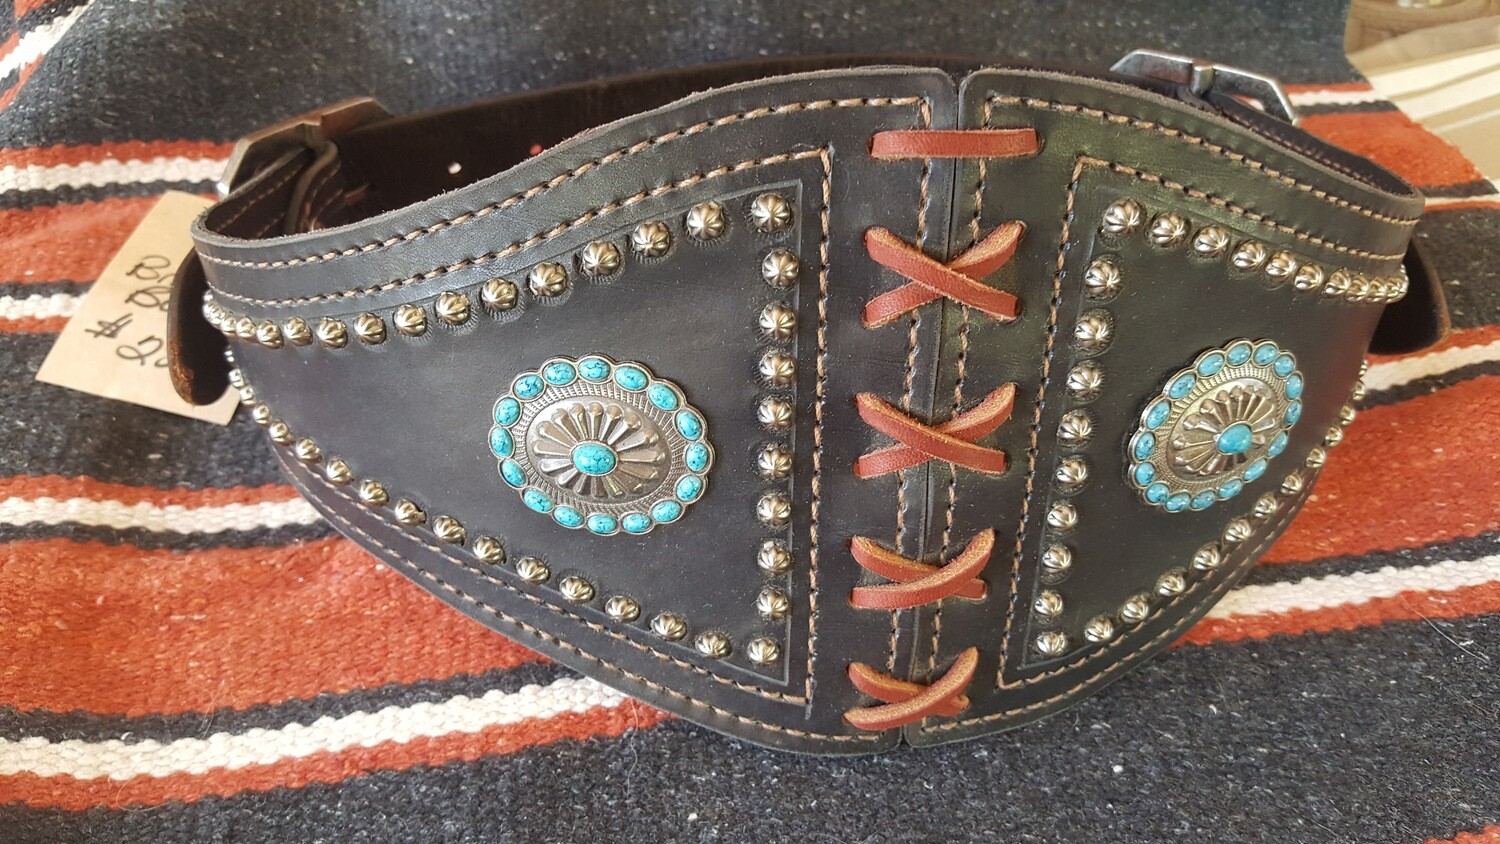 Ladies' Black Leather Bronco Belt with Conchos and Spots